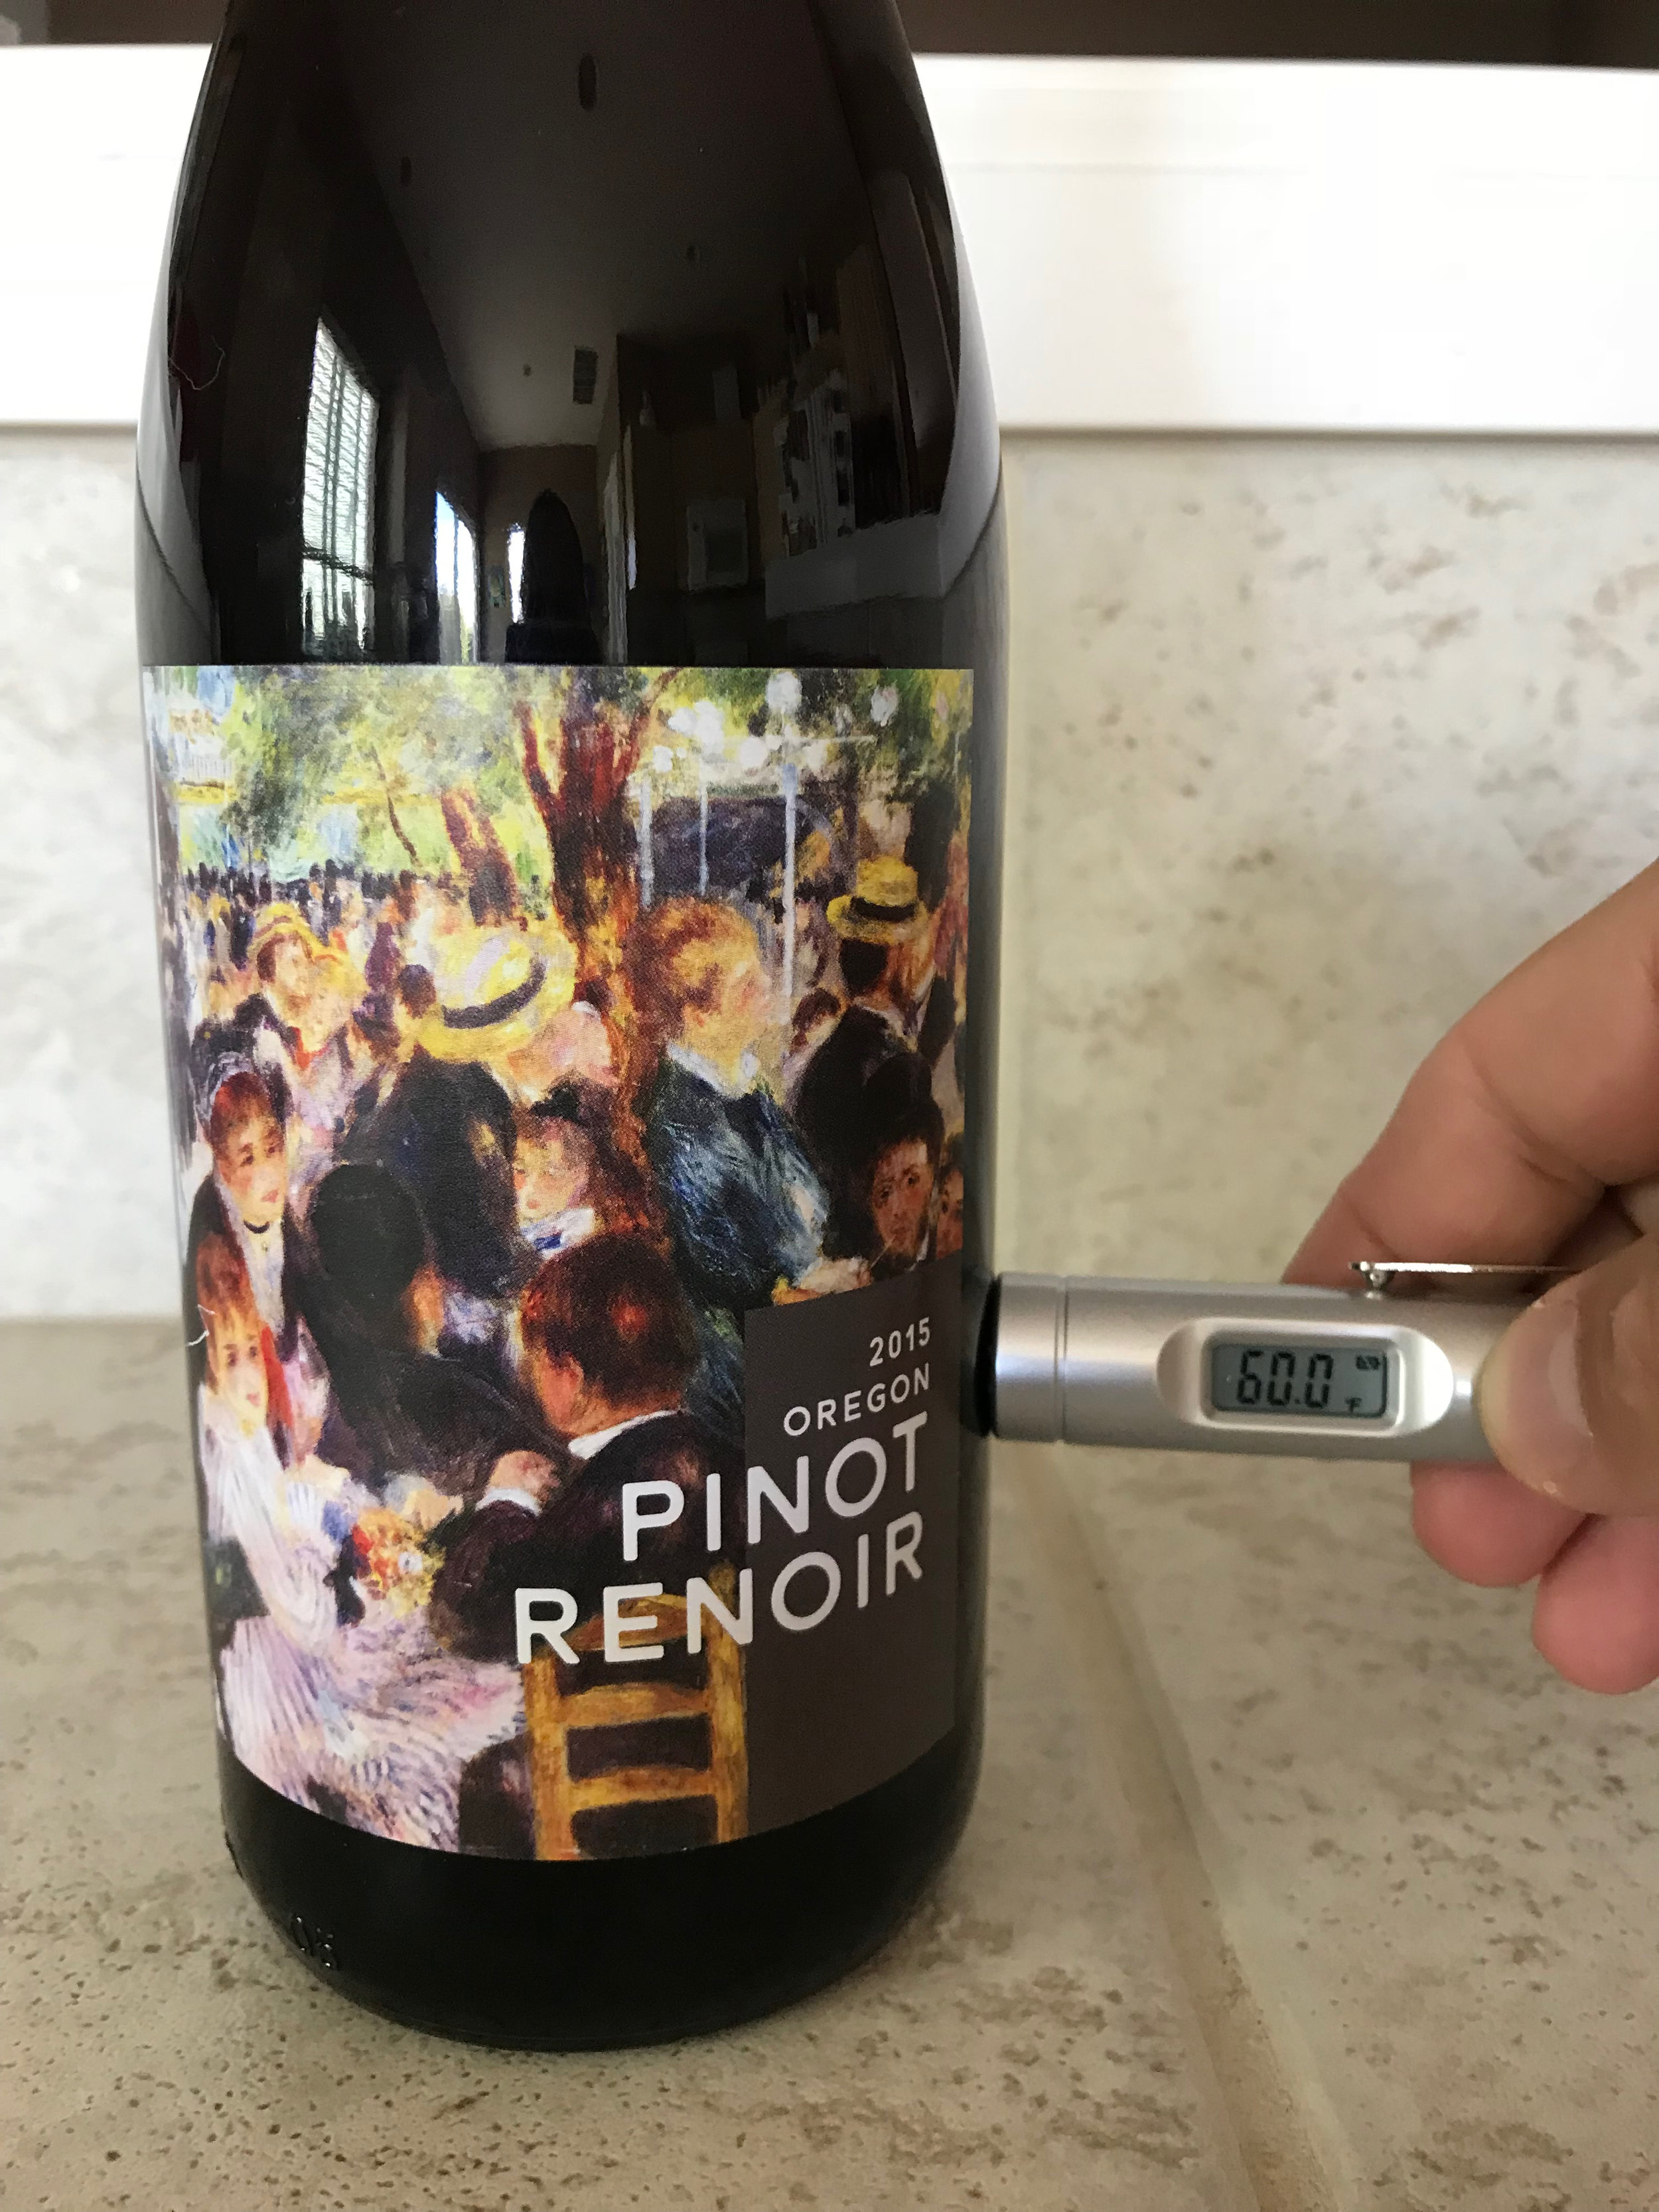 We have our 2015 Pinot Renoir exactly where I want it.